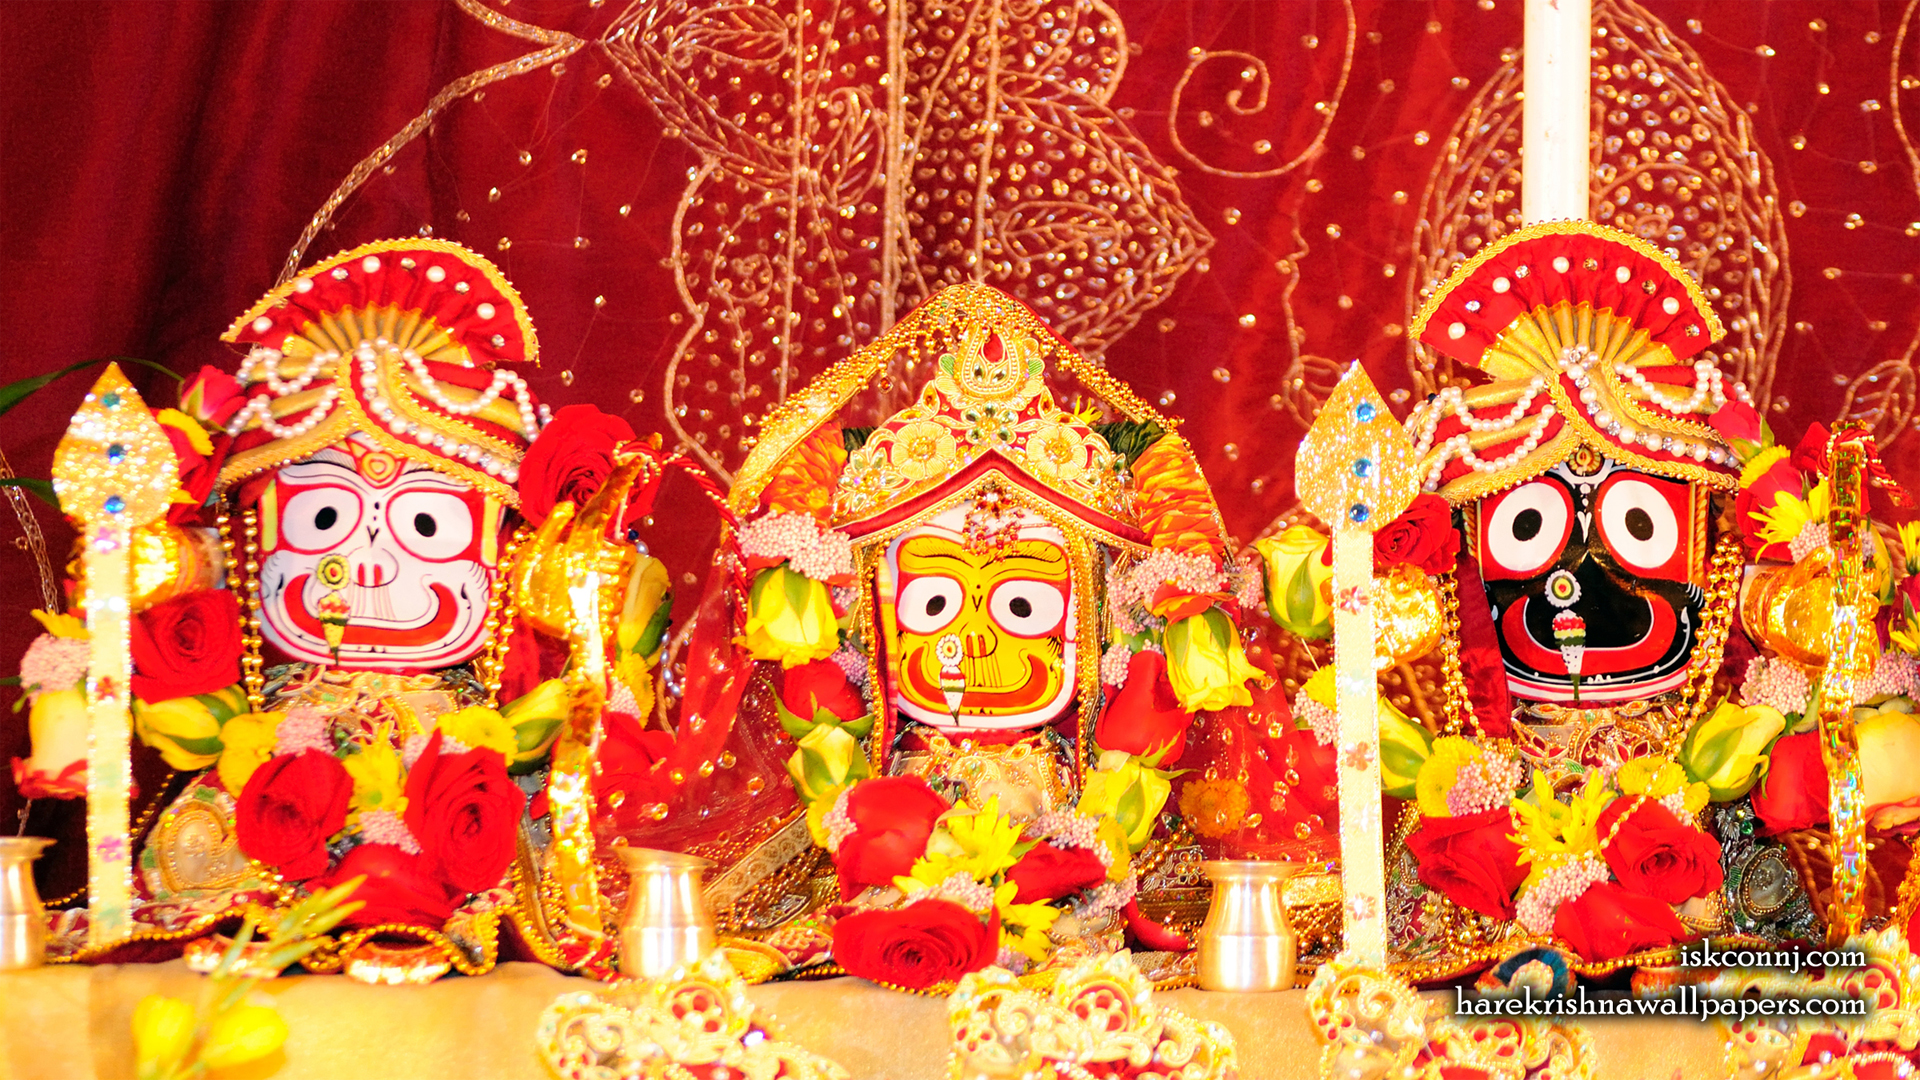 Jagannath Baladeva Subhadra Wallpaper (004) Size 1920x1080 Download